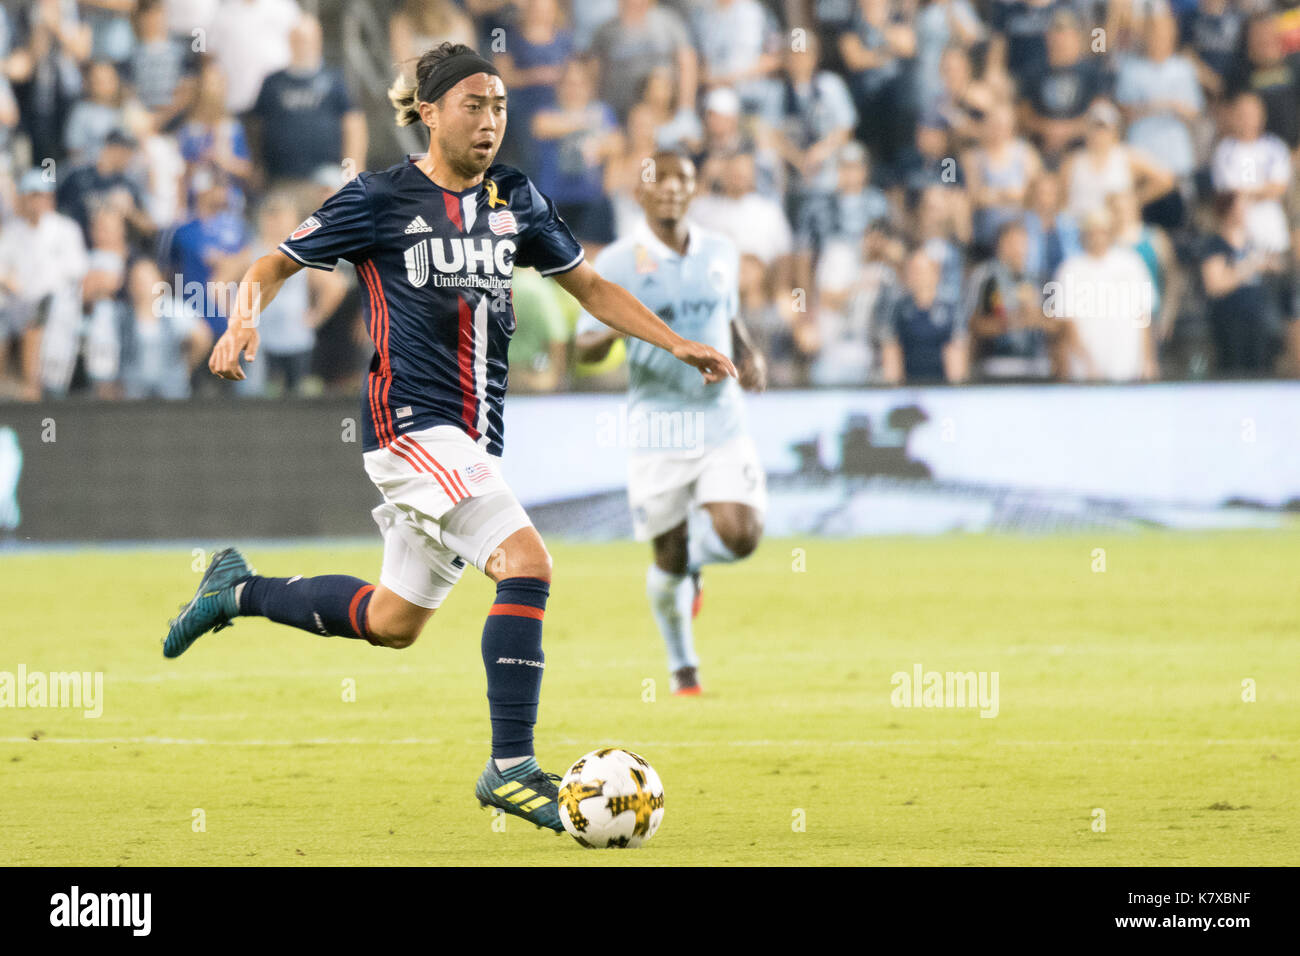 Lee Nguyen, New England Revolution soccer player is at Children's Mercy Park Stock Photo